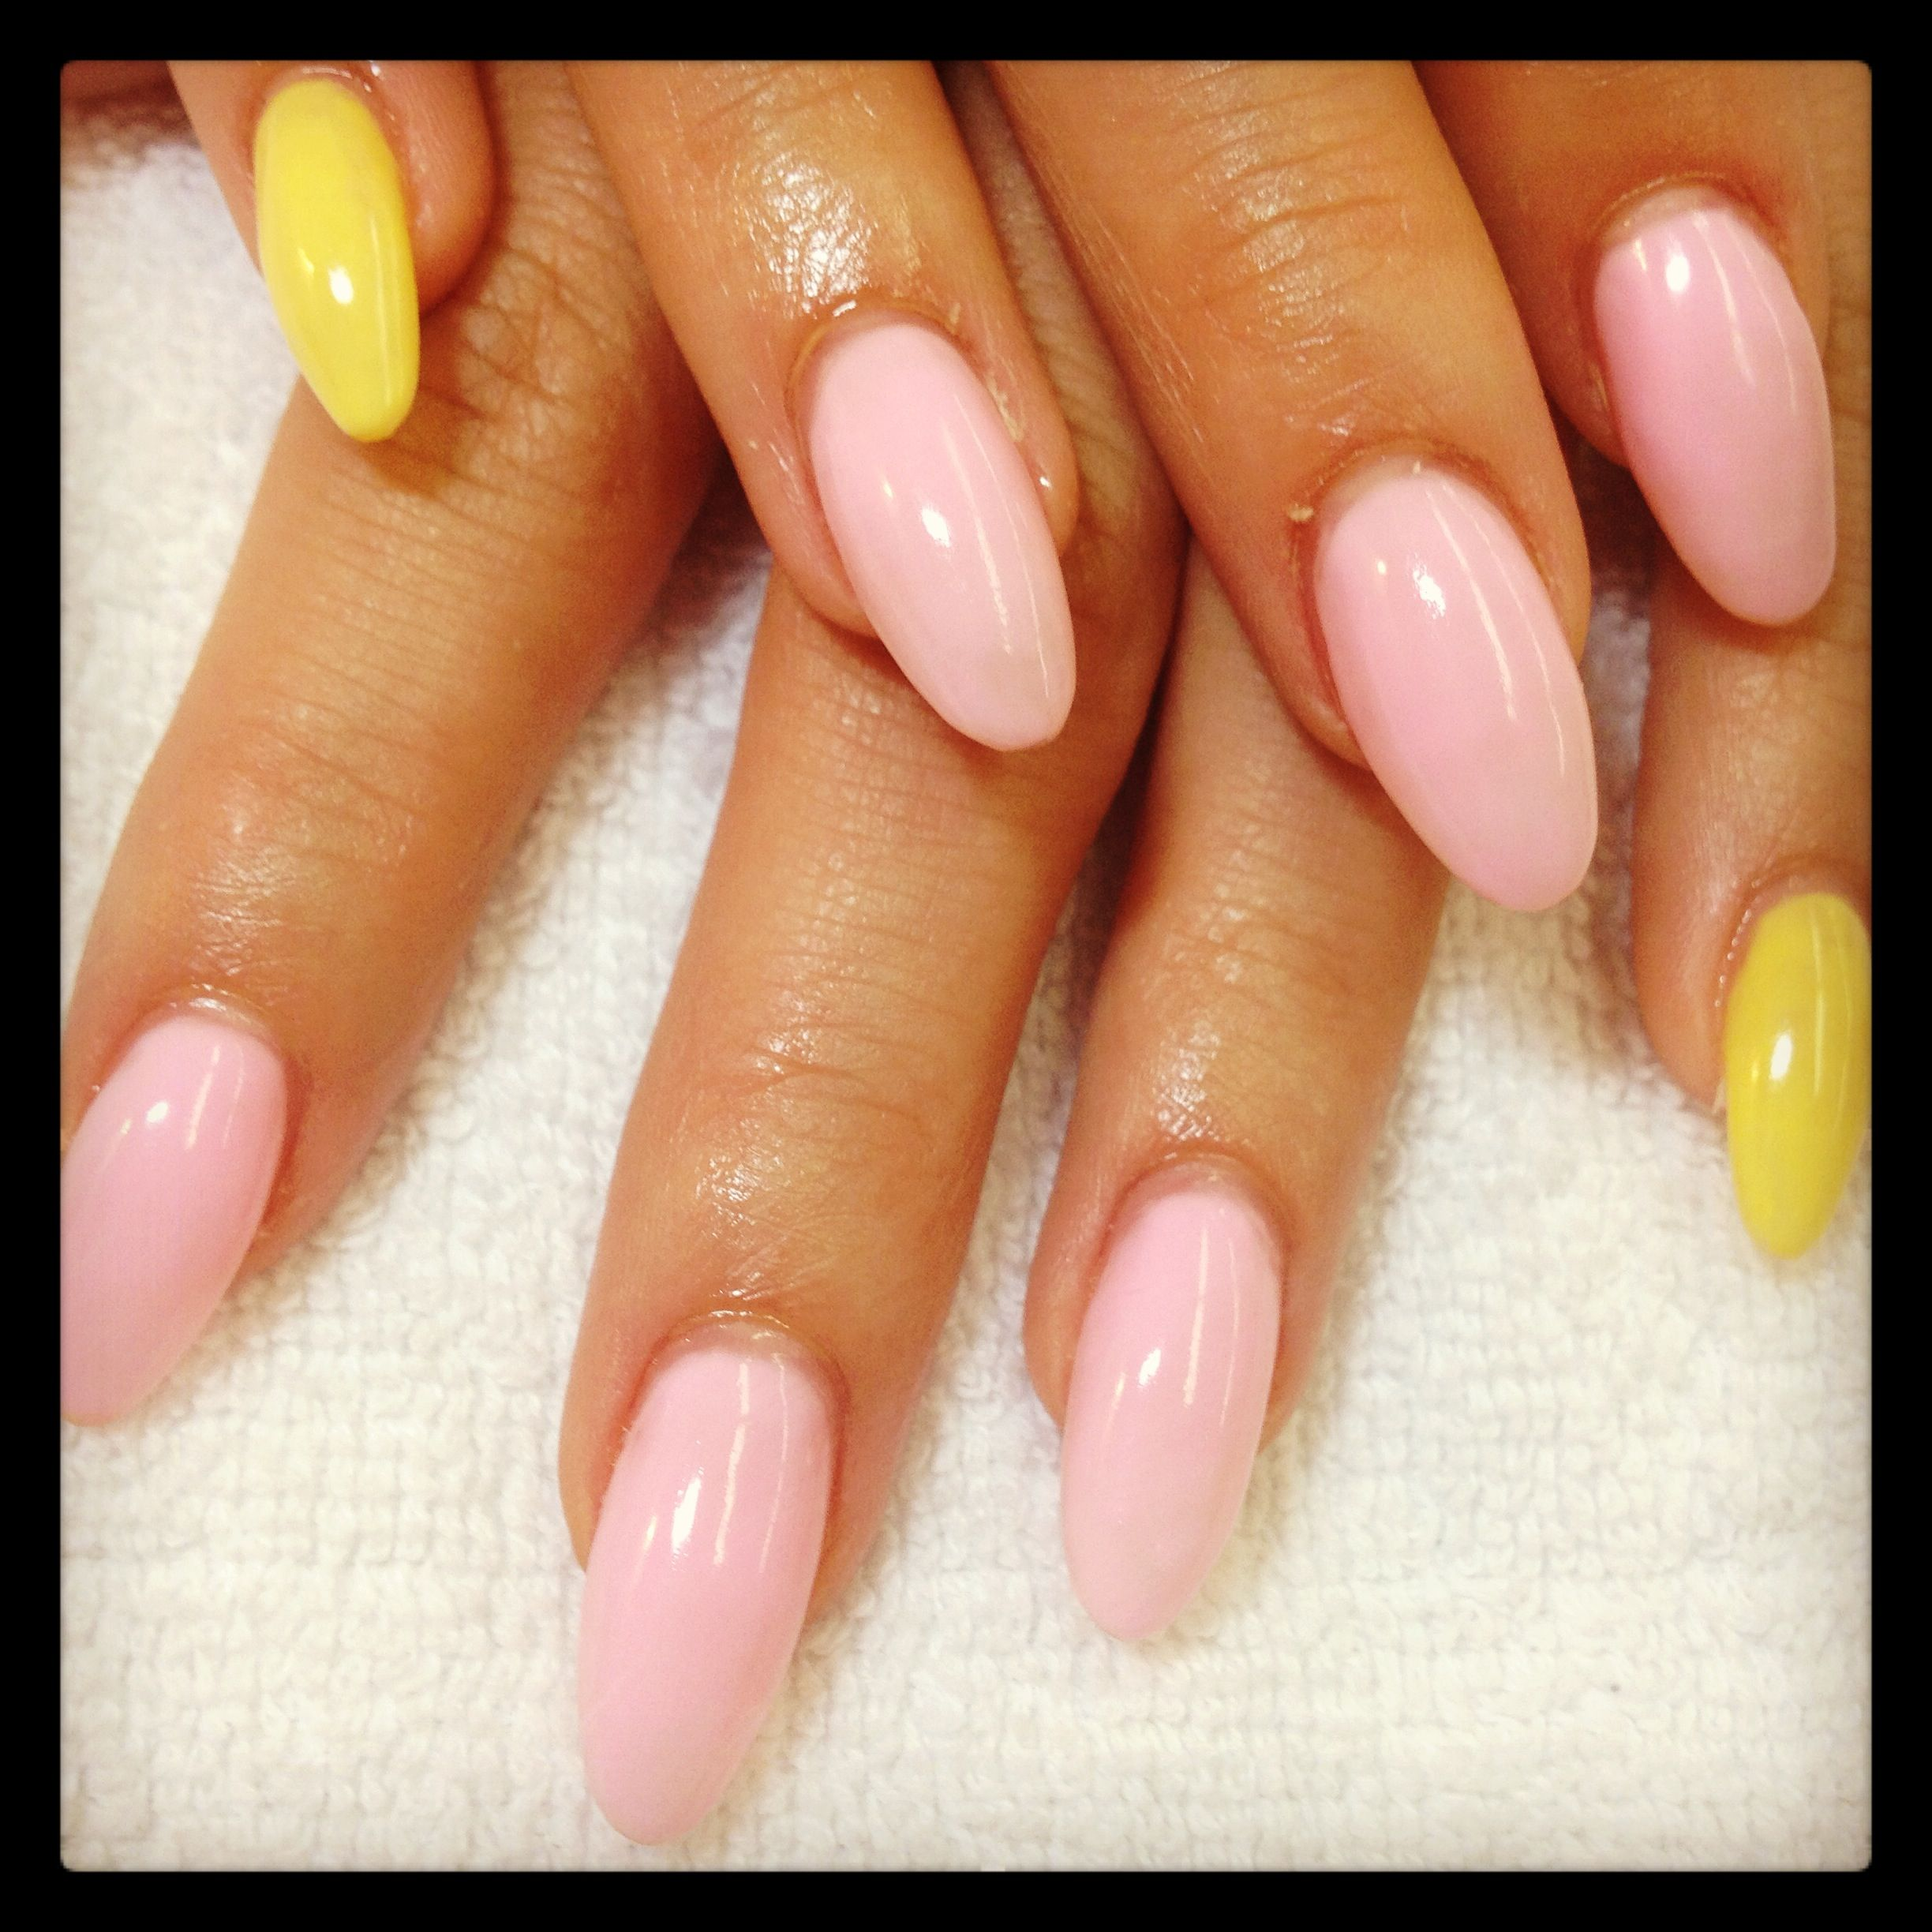 Pink and yellow almond nails | Meg's nail designs ... Almond Nagels